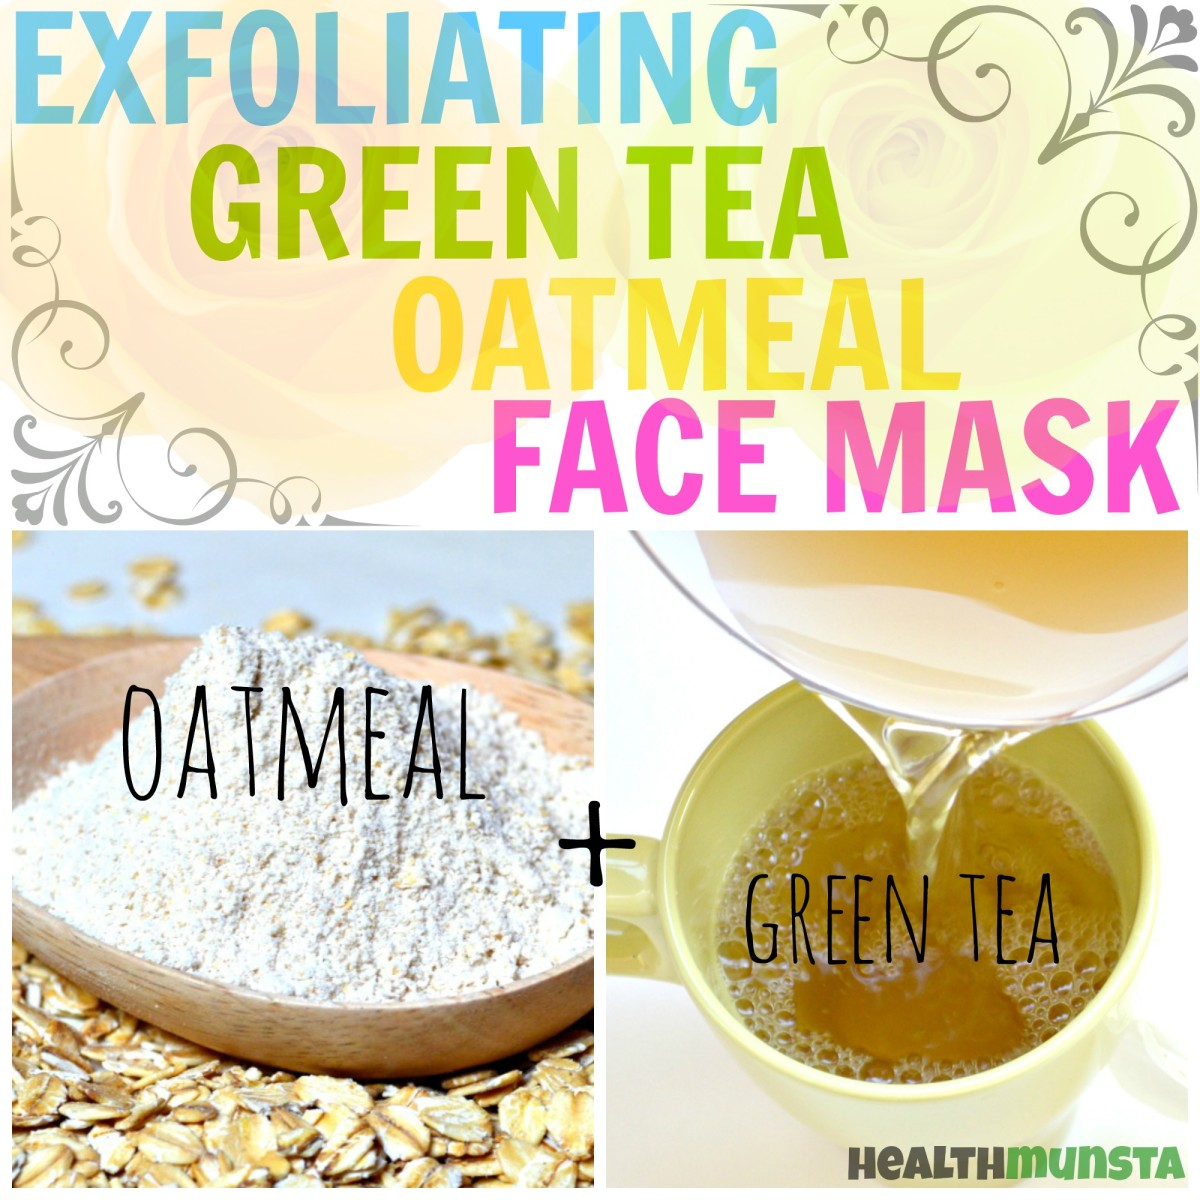 This green tea oatmeal face mask will gently exfoliate dead cells & flaky skin and pull out grime, dirt, sebum and pollution from the pores.